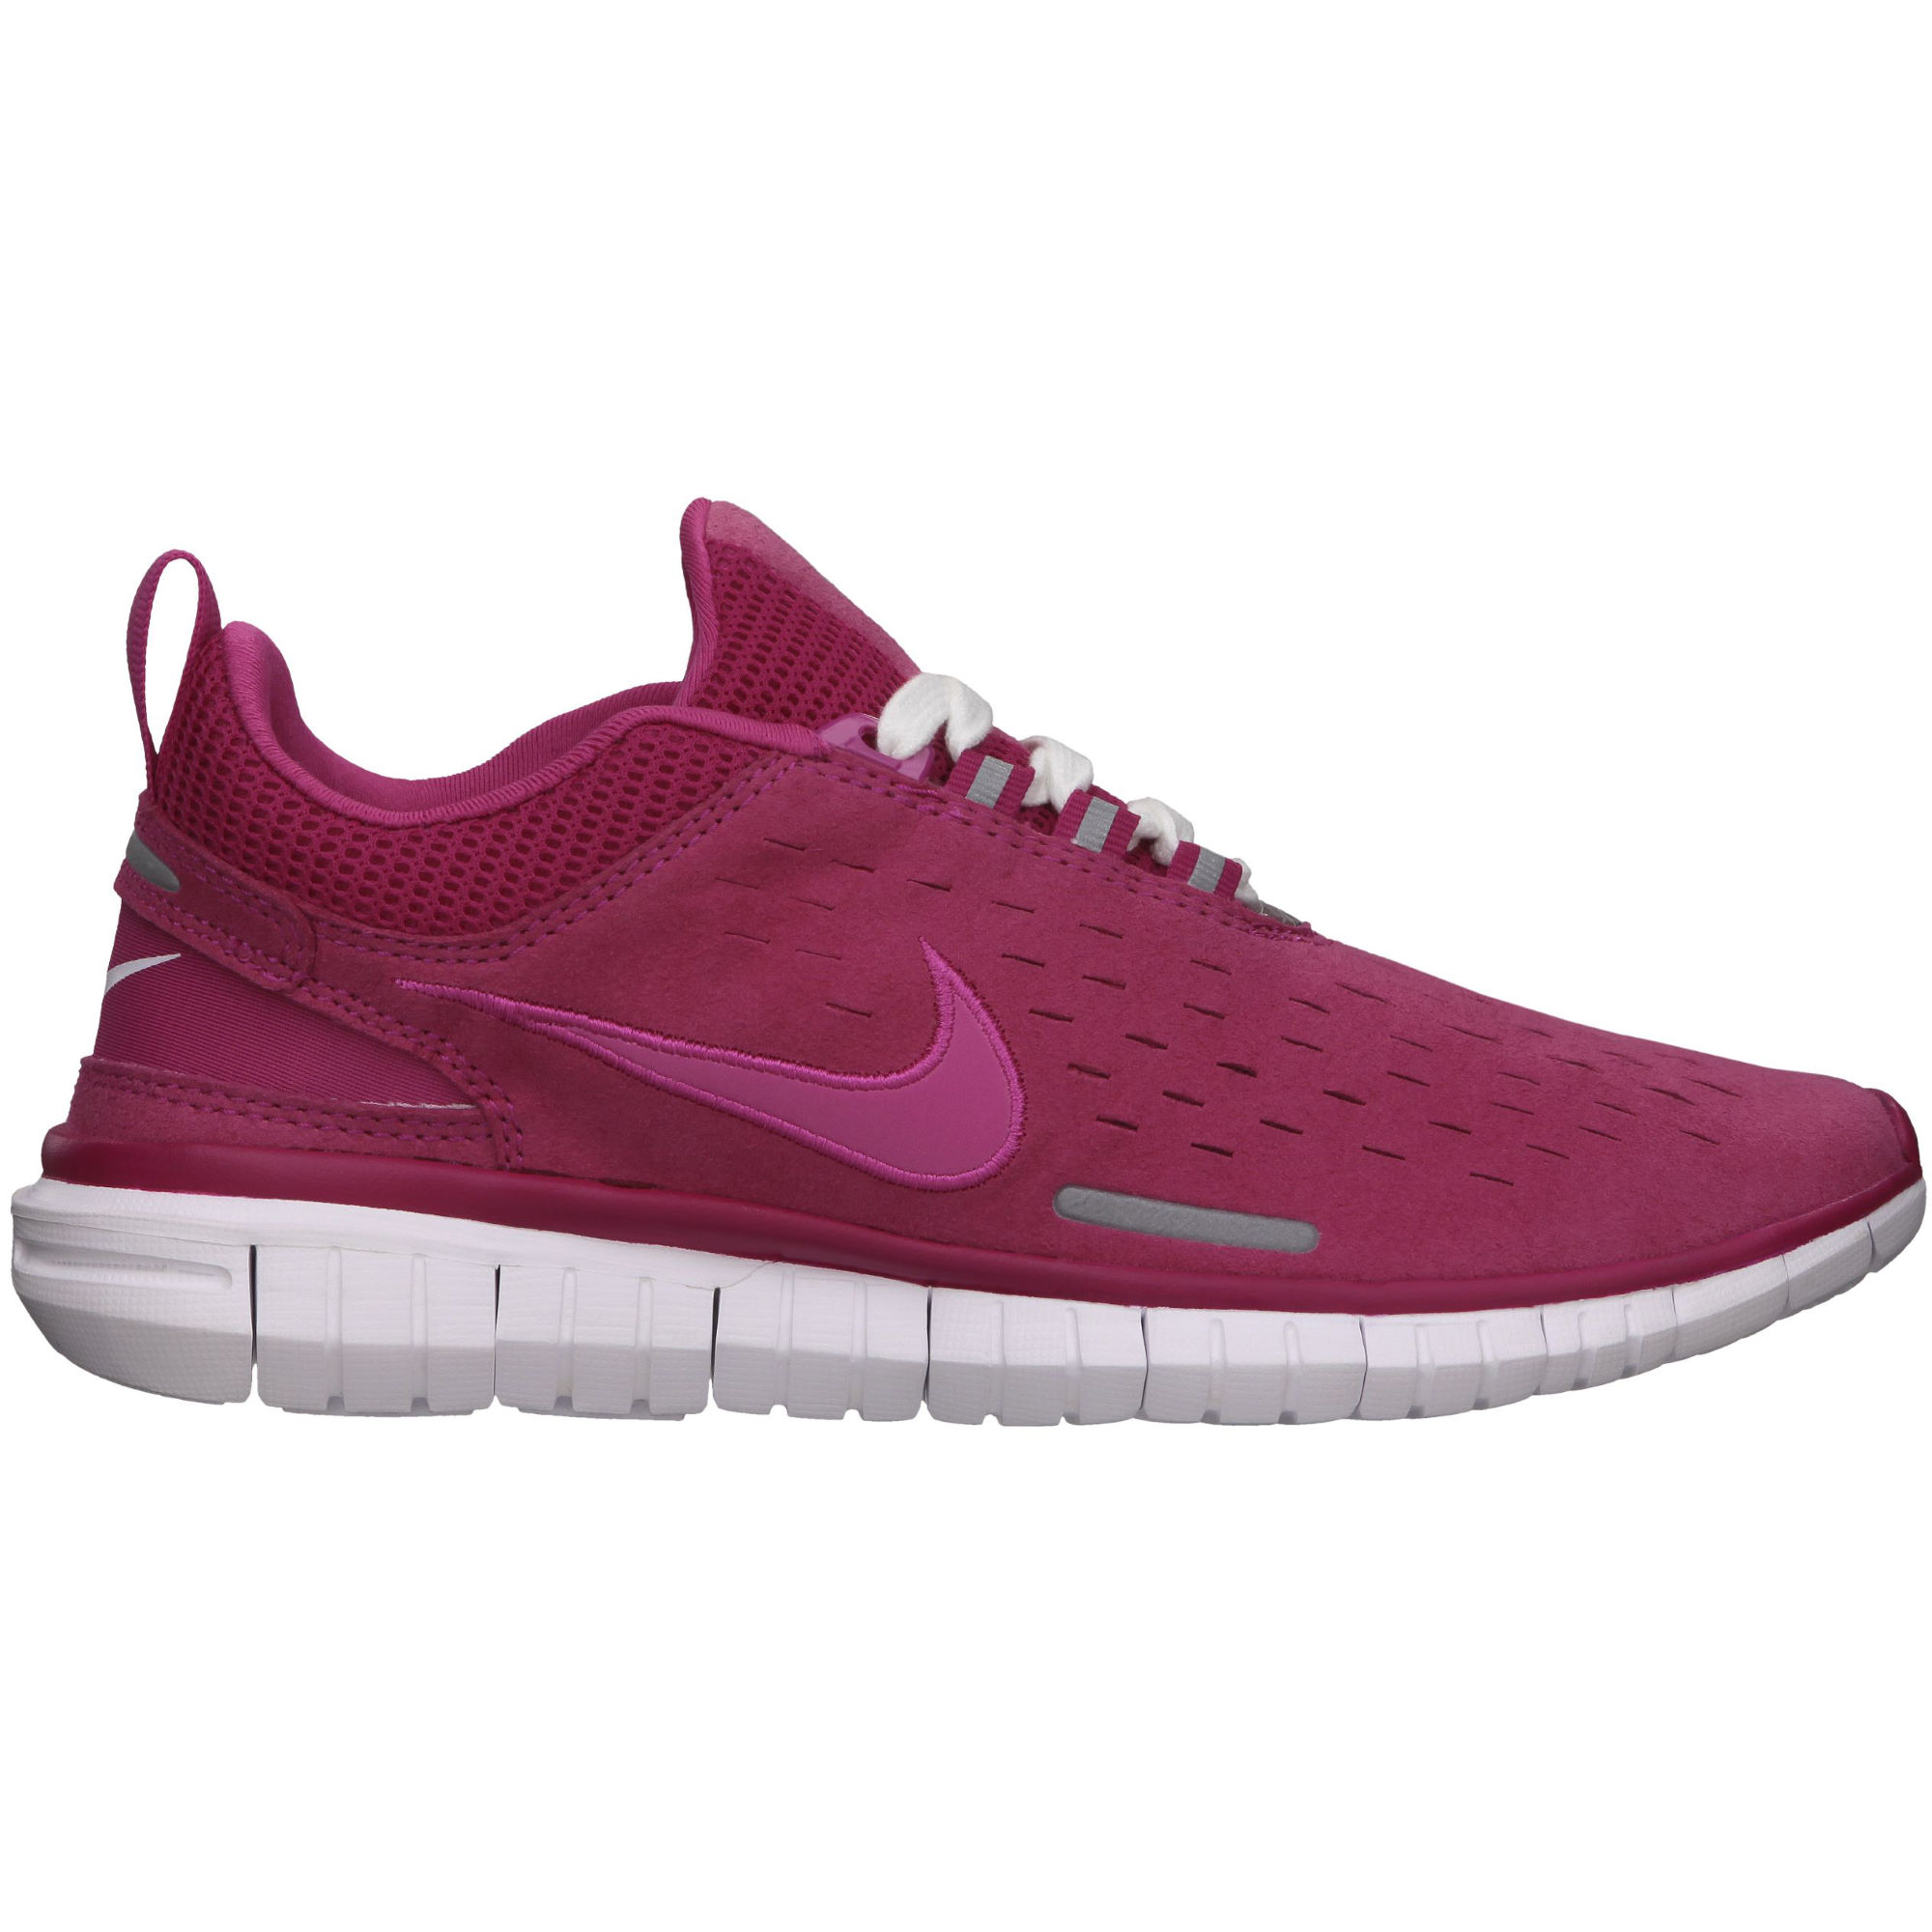 Women's Shoes Forget diamonds, shoes are a girl's best friend. Treat your feet and make your outfit shine with footwear for all of your favorite activities from brands like Nike, adidas, Puma, Brooks, Asics and more, all at Finish Line.